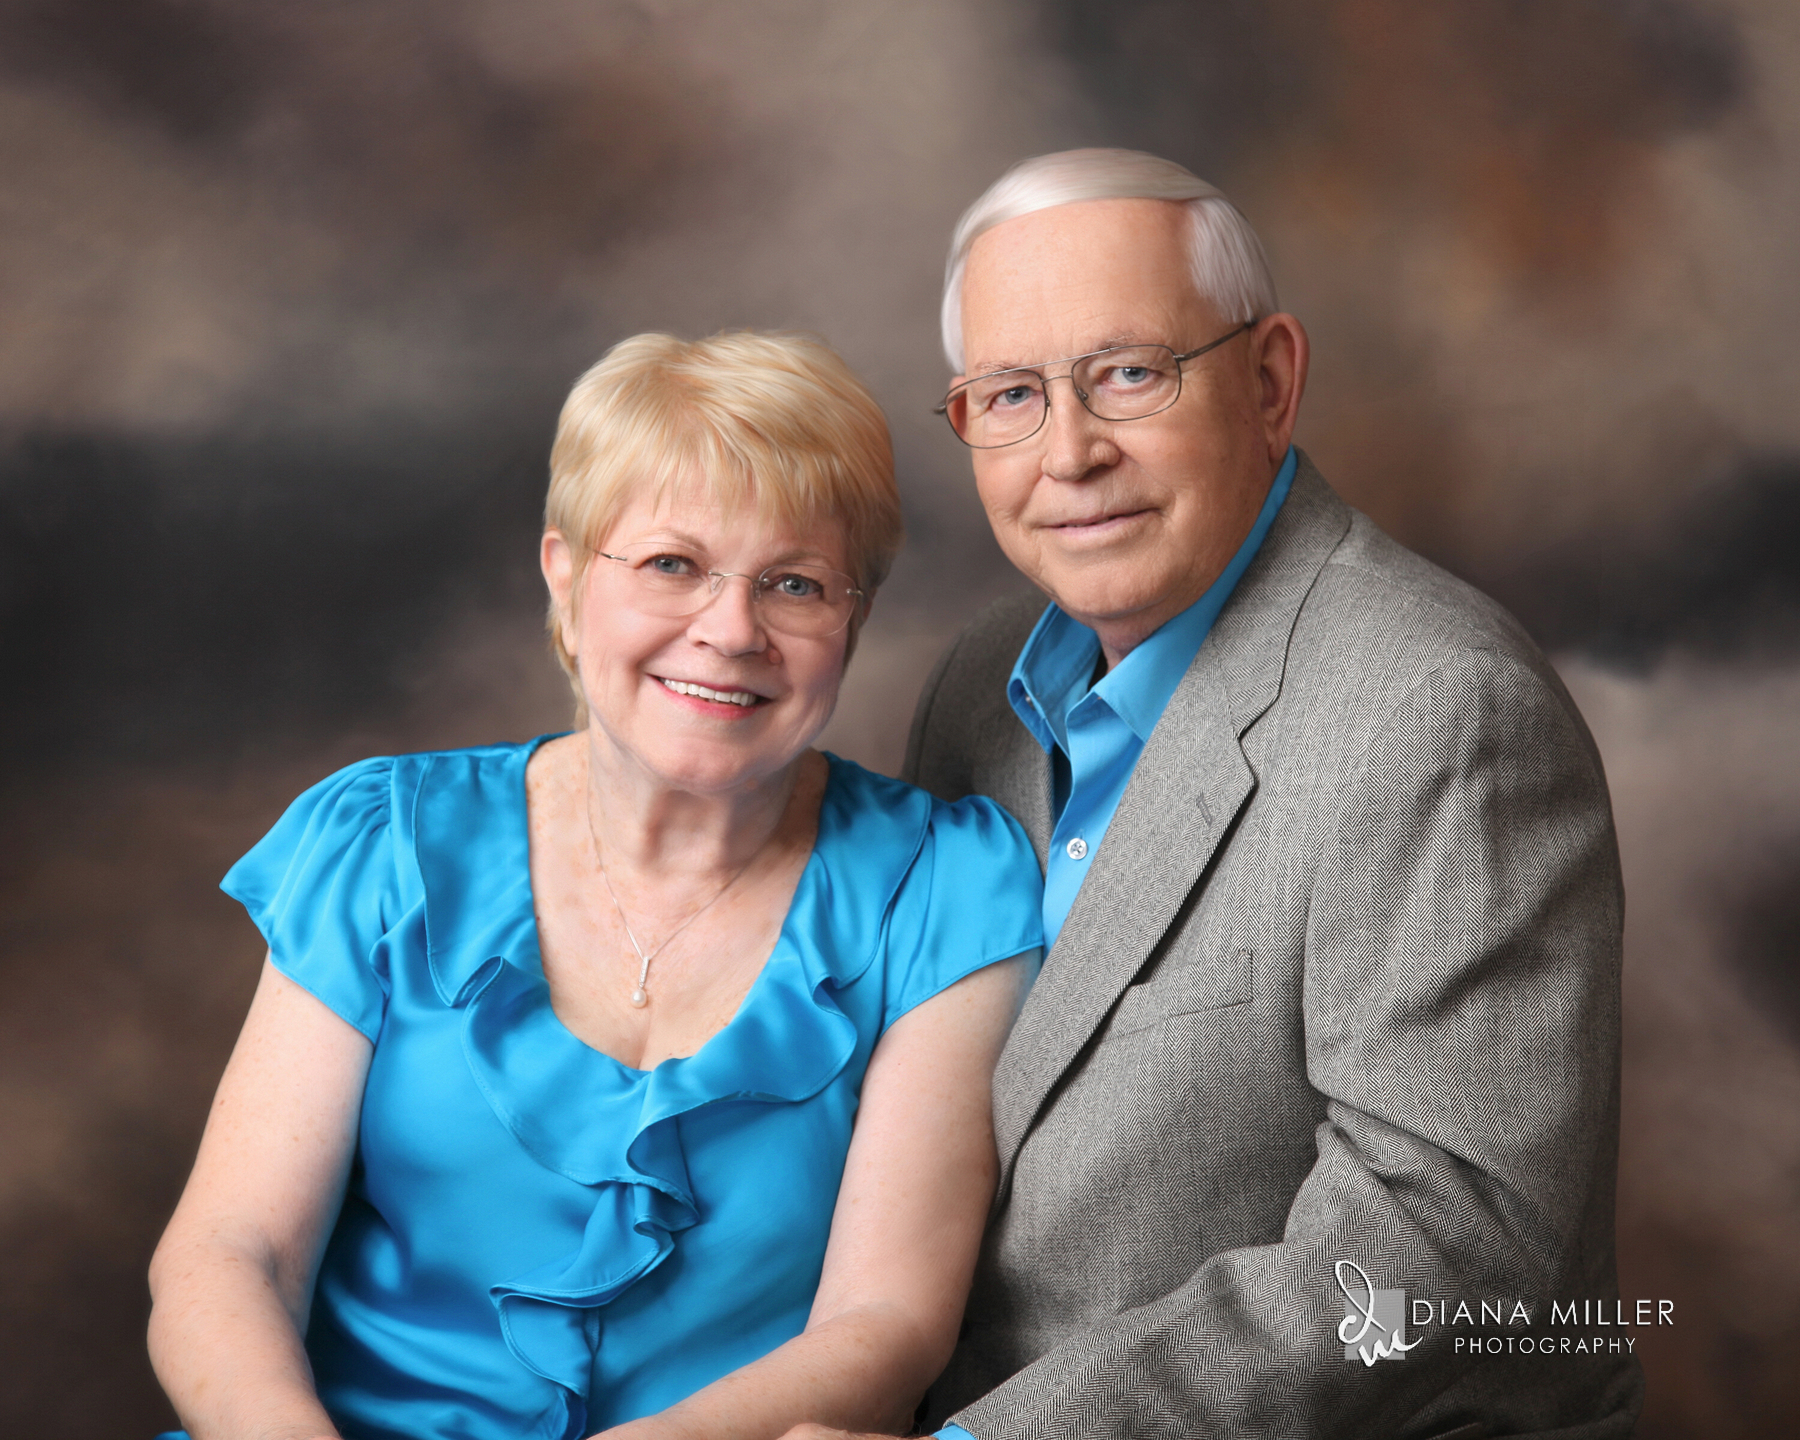 senior citizen couple's portrait | Diana Miller Photography